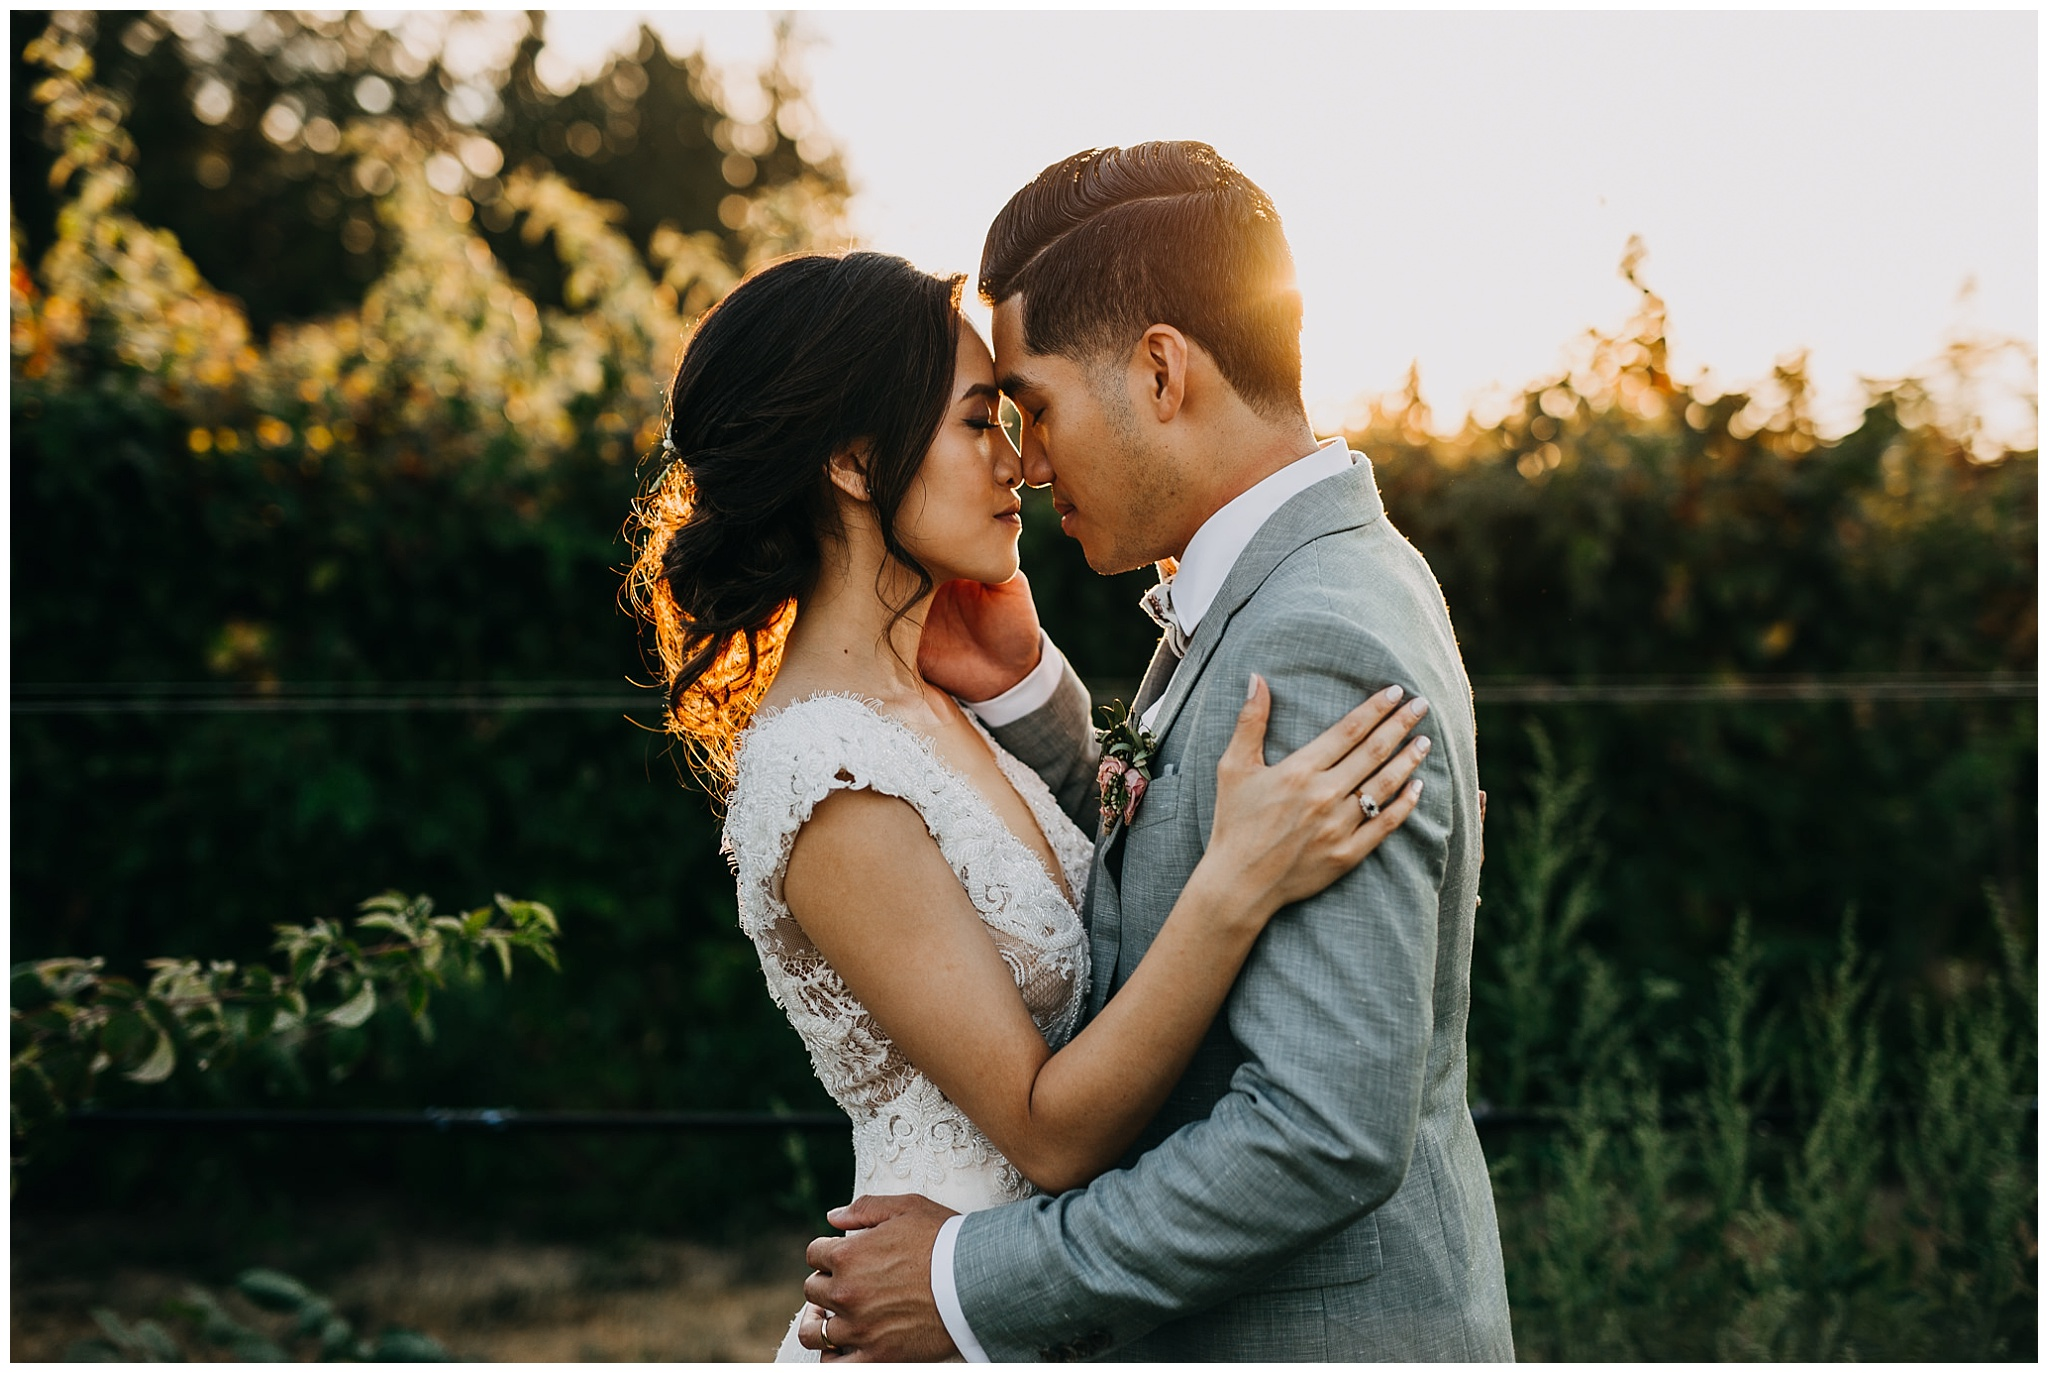 bride and groom golden hour sunset portrait at krause berry farm wedding